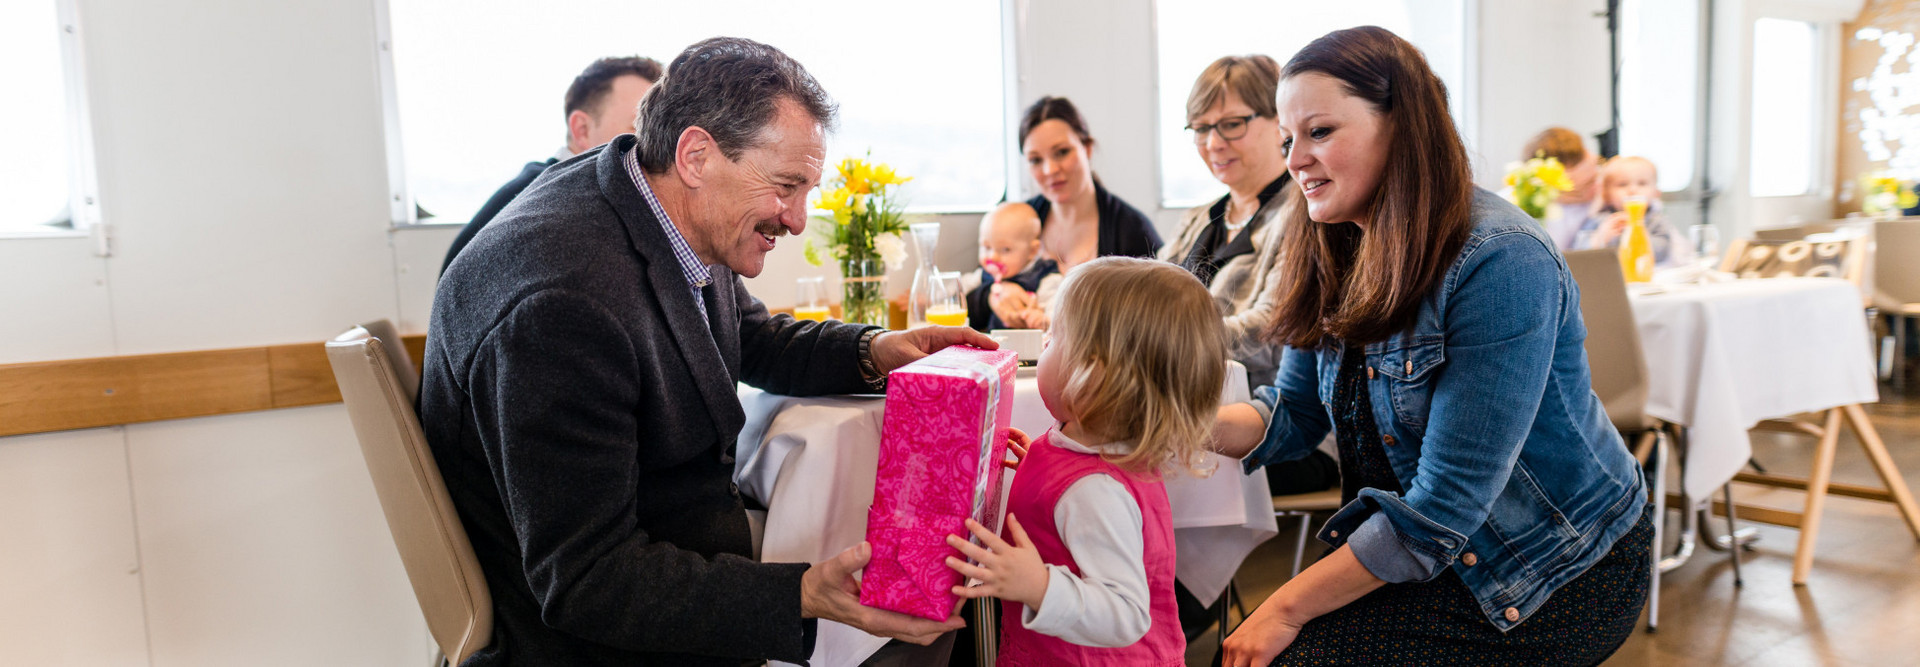 Family birthday party on the ship. A little girl gives a gift to her grandfather.